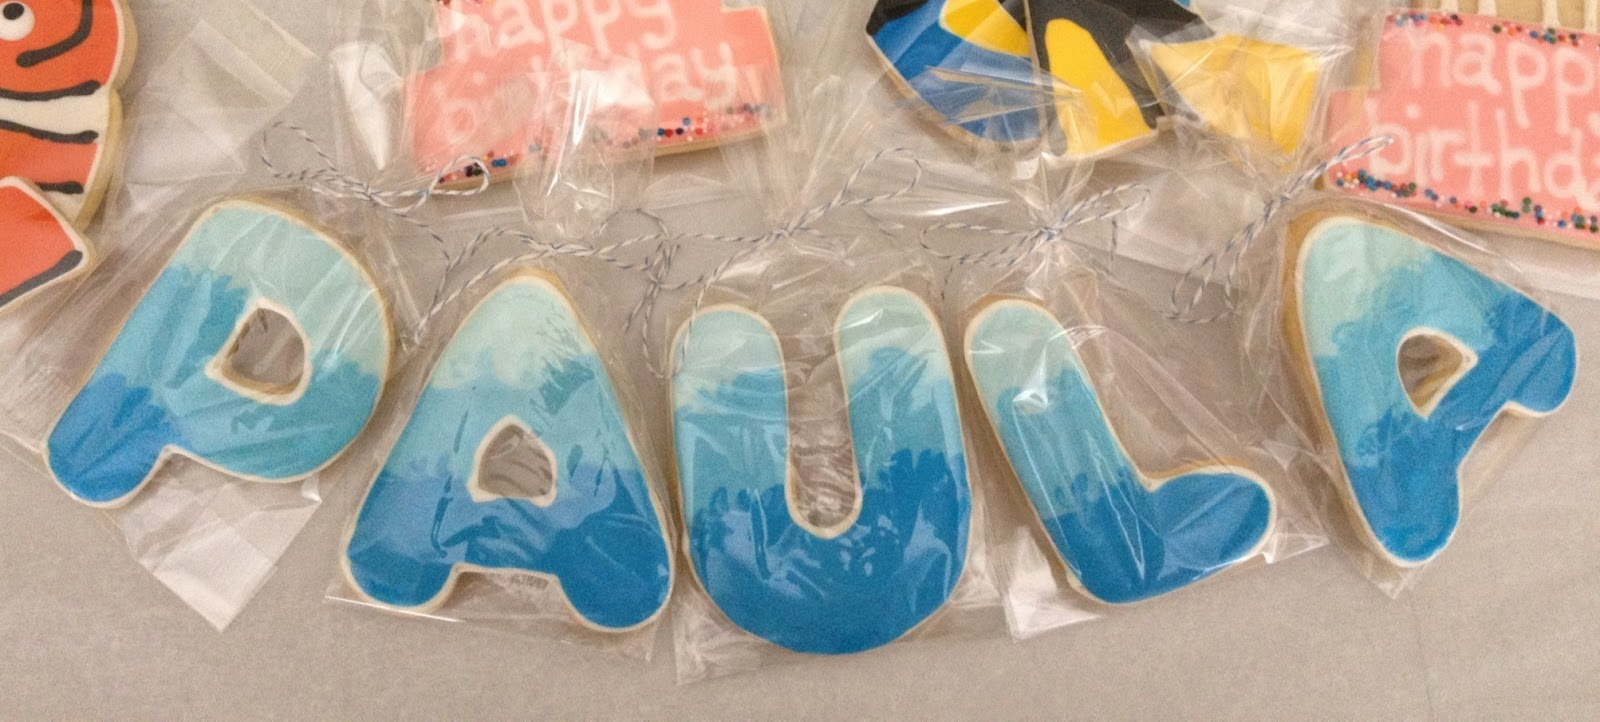 ... Paula's names and I tinted the royal icing in shades of ocean blue